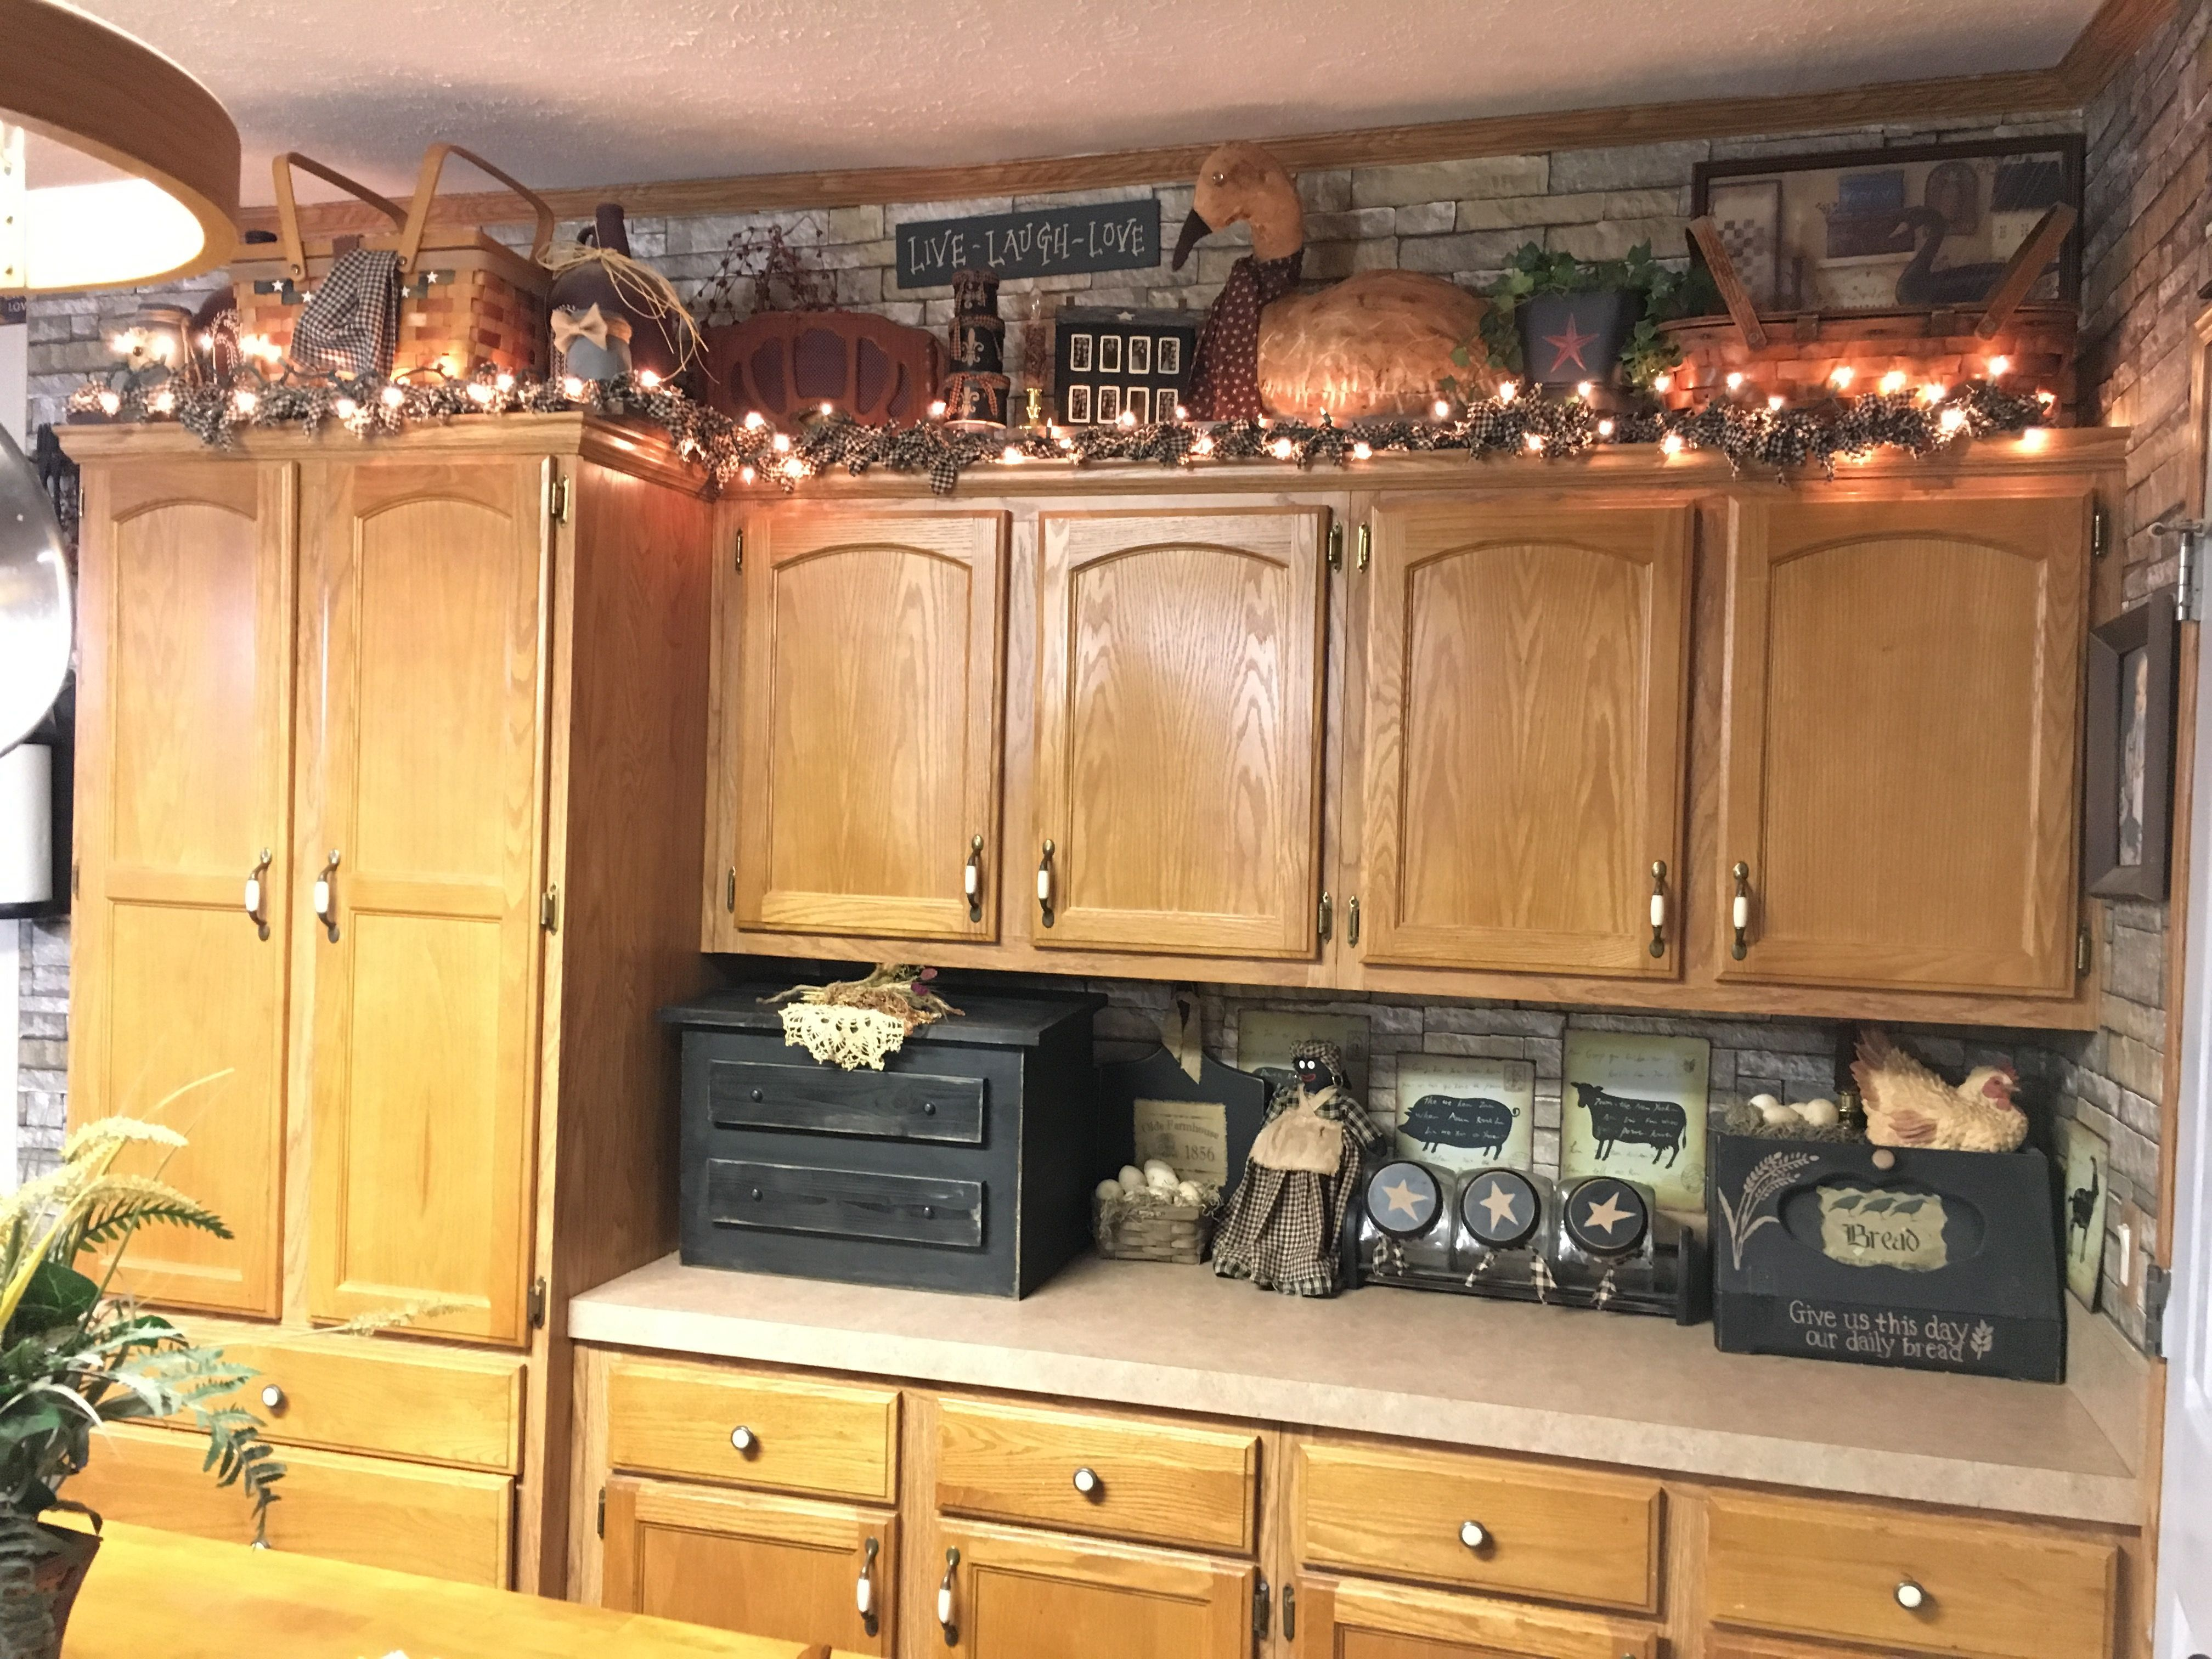 Primitive Kitchen Decor And Above Cabinets Decor In 2020 Primitive Kitchen Decor Kitchen Cabinets Decor Rustic Kitchen